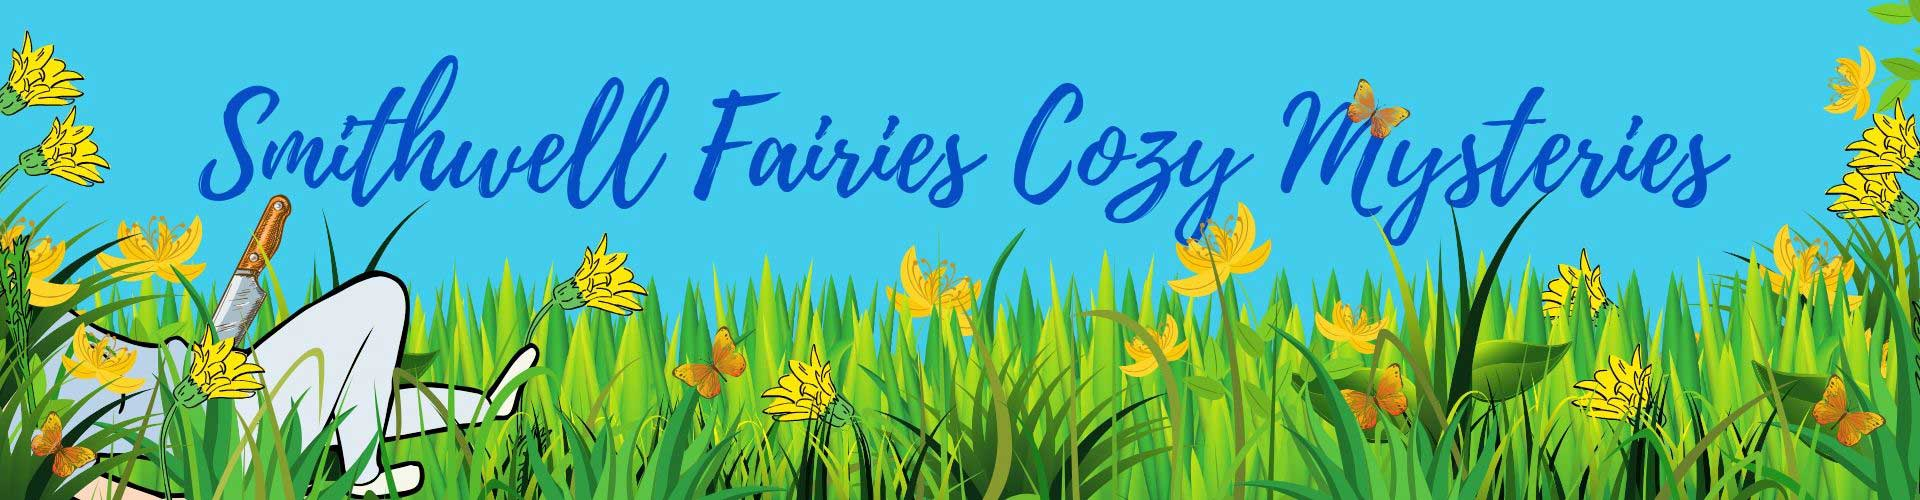 Smithwell Fairies - Cozy Mysteries